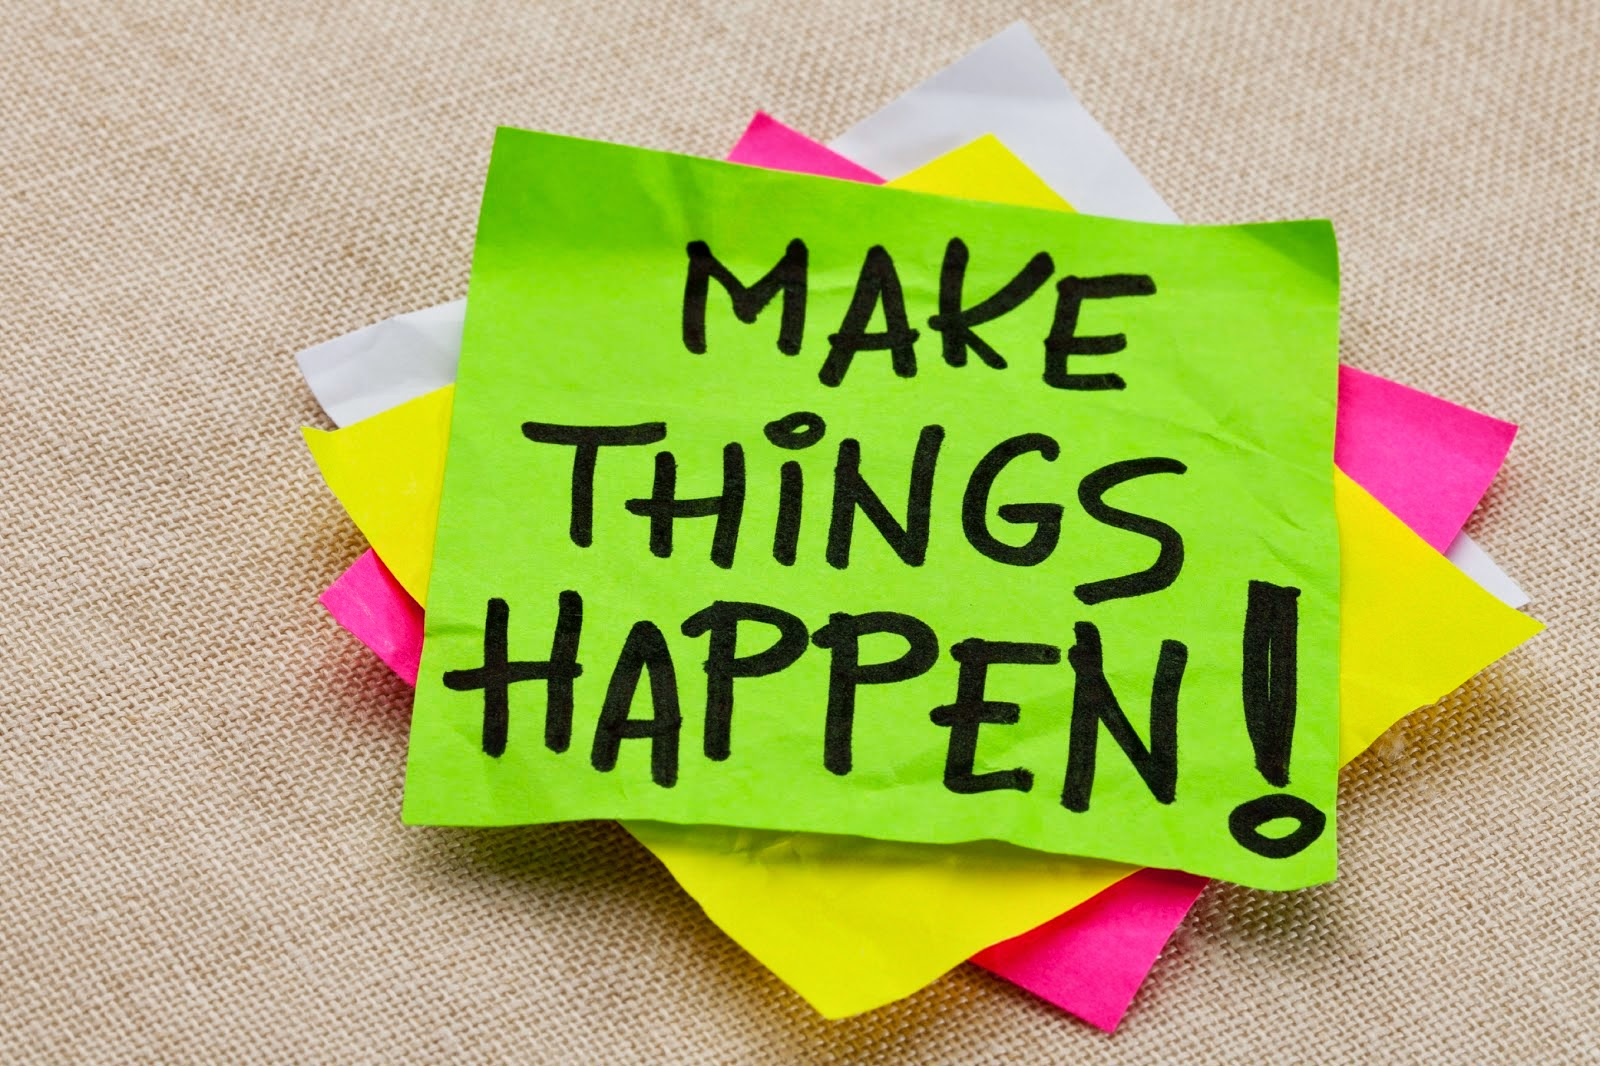 Make things happen, Failing Forward, Seeing Failure as a Positive Experience in your life, focus on your personal development, www.HealthyFitFocused.com